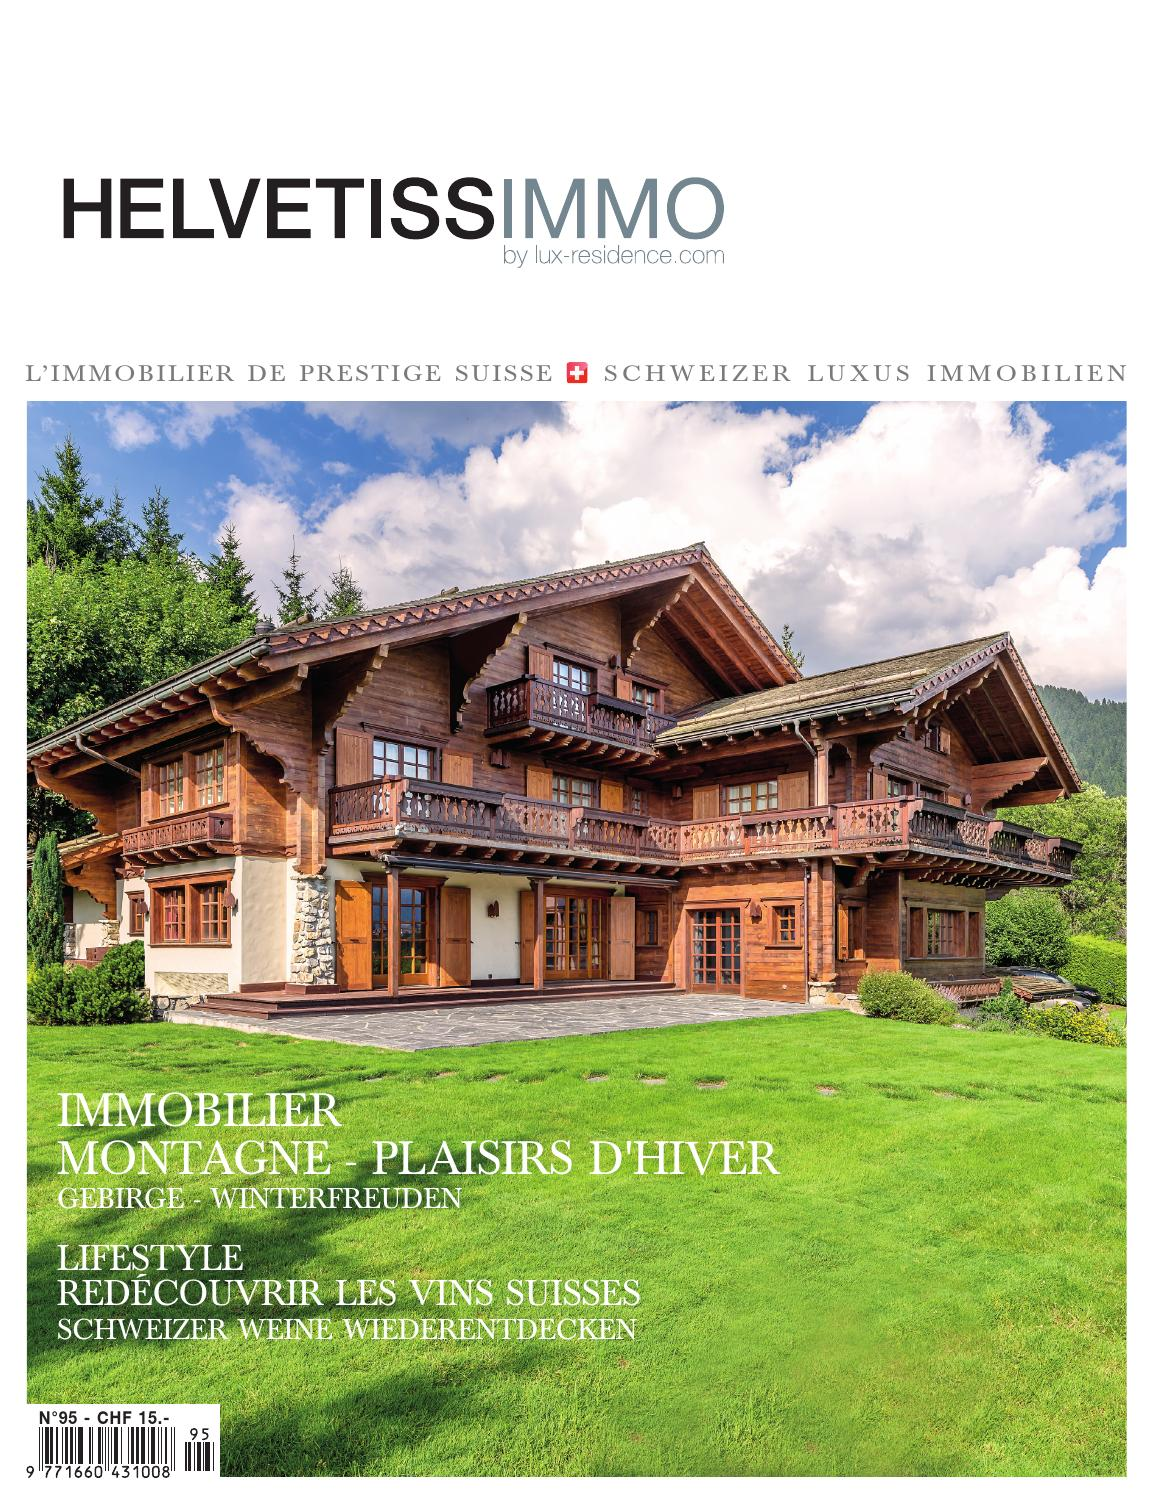 Helvetissimmo H95 (Octobre Décembre 2015) By HELVETISSIMMO (Luxury Real  Estate Magazine)   Issuu